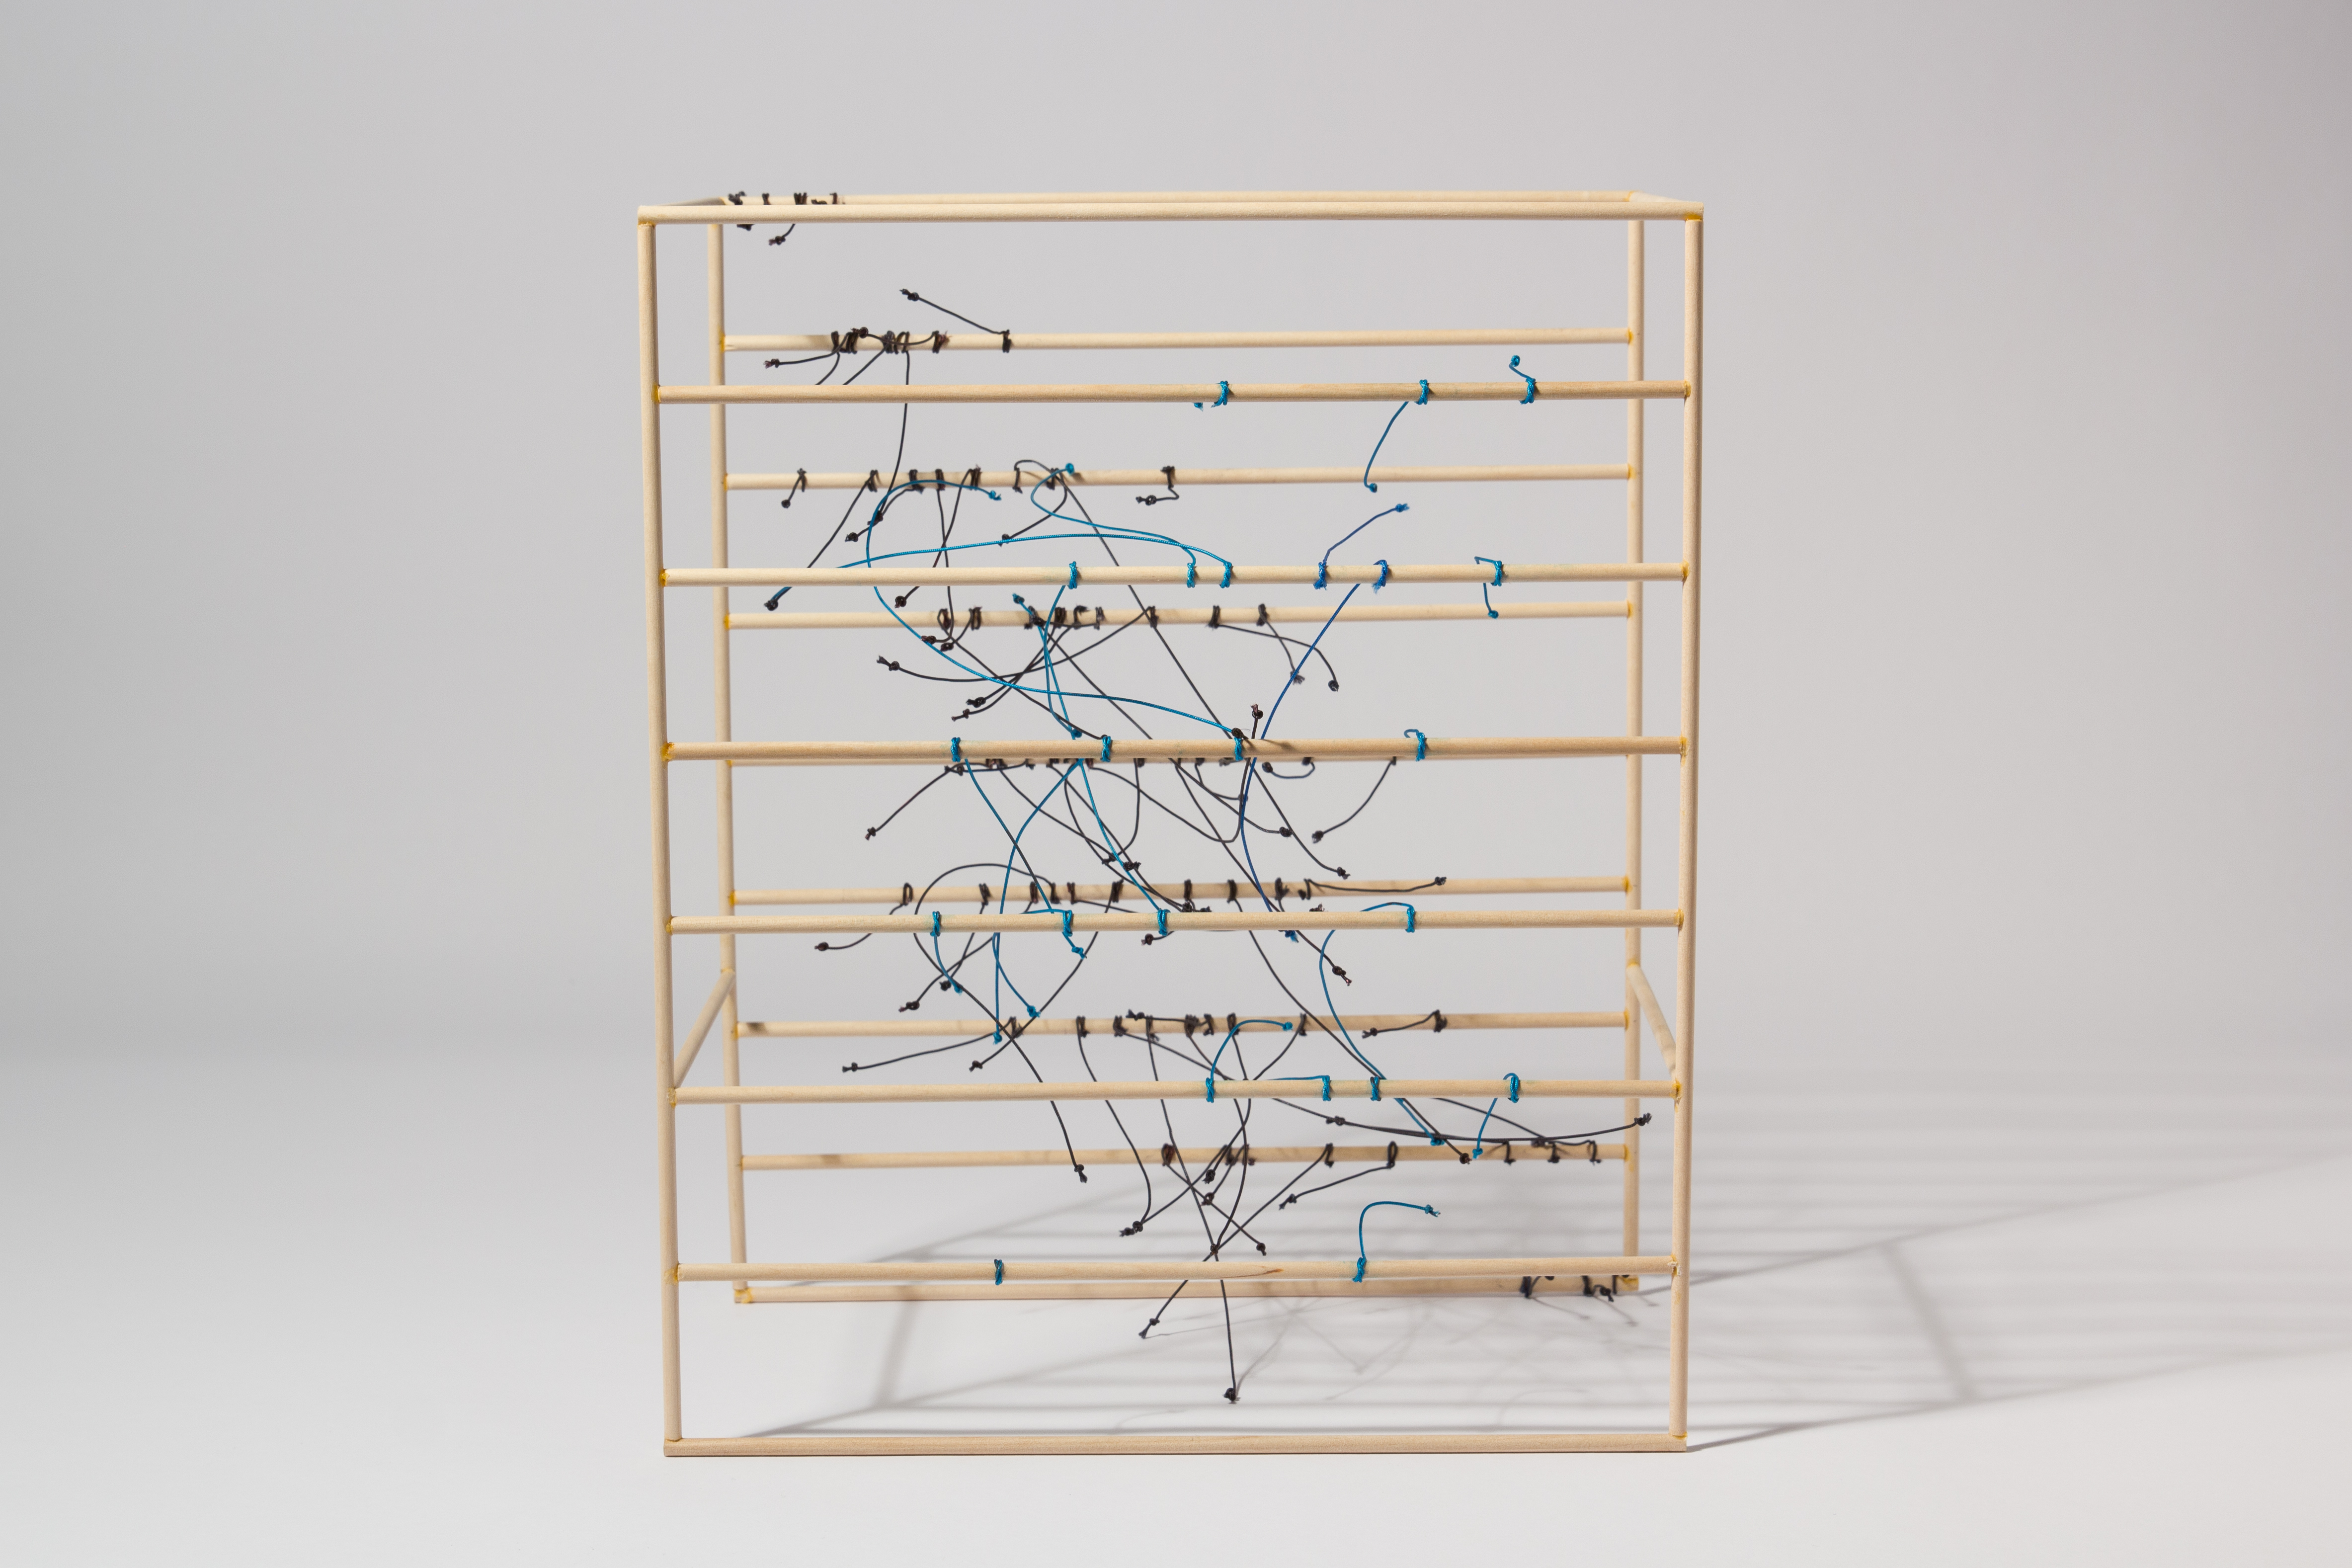 Richard Ibghy & Marilou Lemmens, Average Years of Schooling and Income Gini Coefficient, 2016, Wood and string, 11 × 13 × 63/4 in. (27.94 × 33.02 × 17.14 cm).